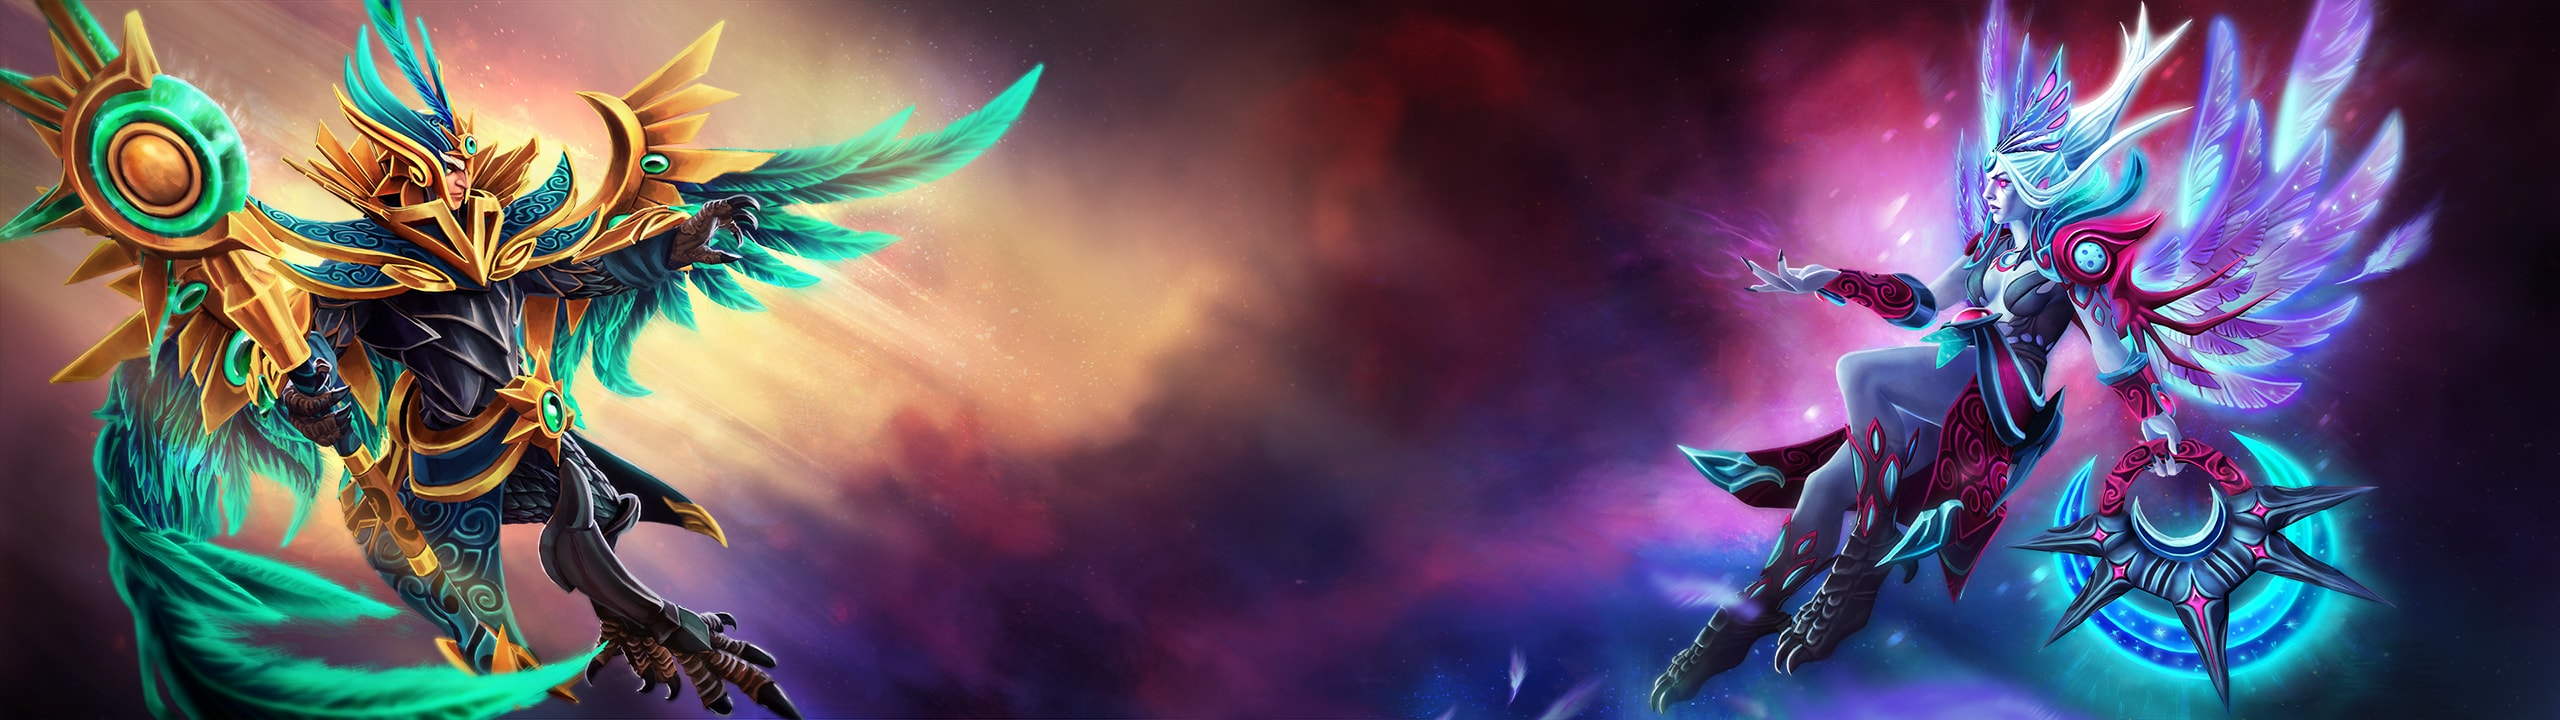 Dota2 : Skywrath Mage HQ wallpapers